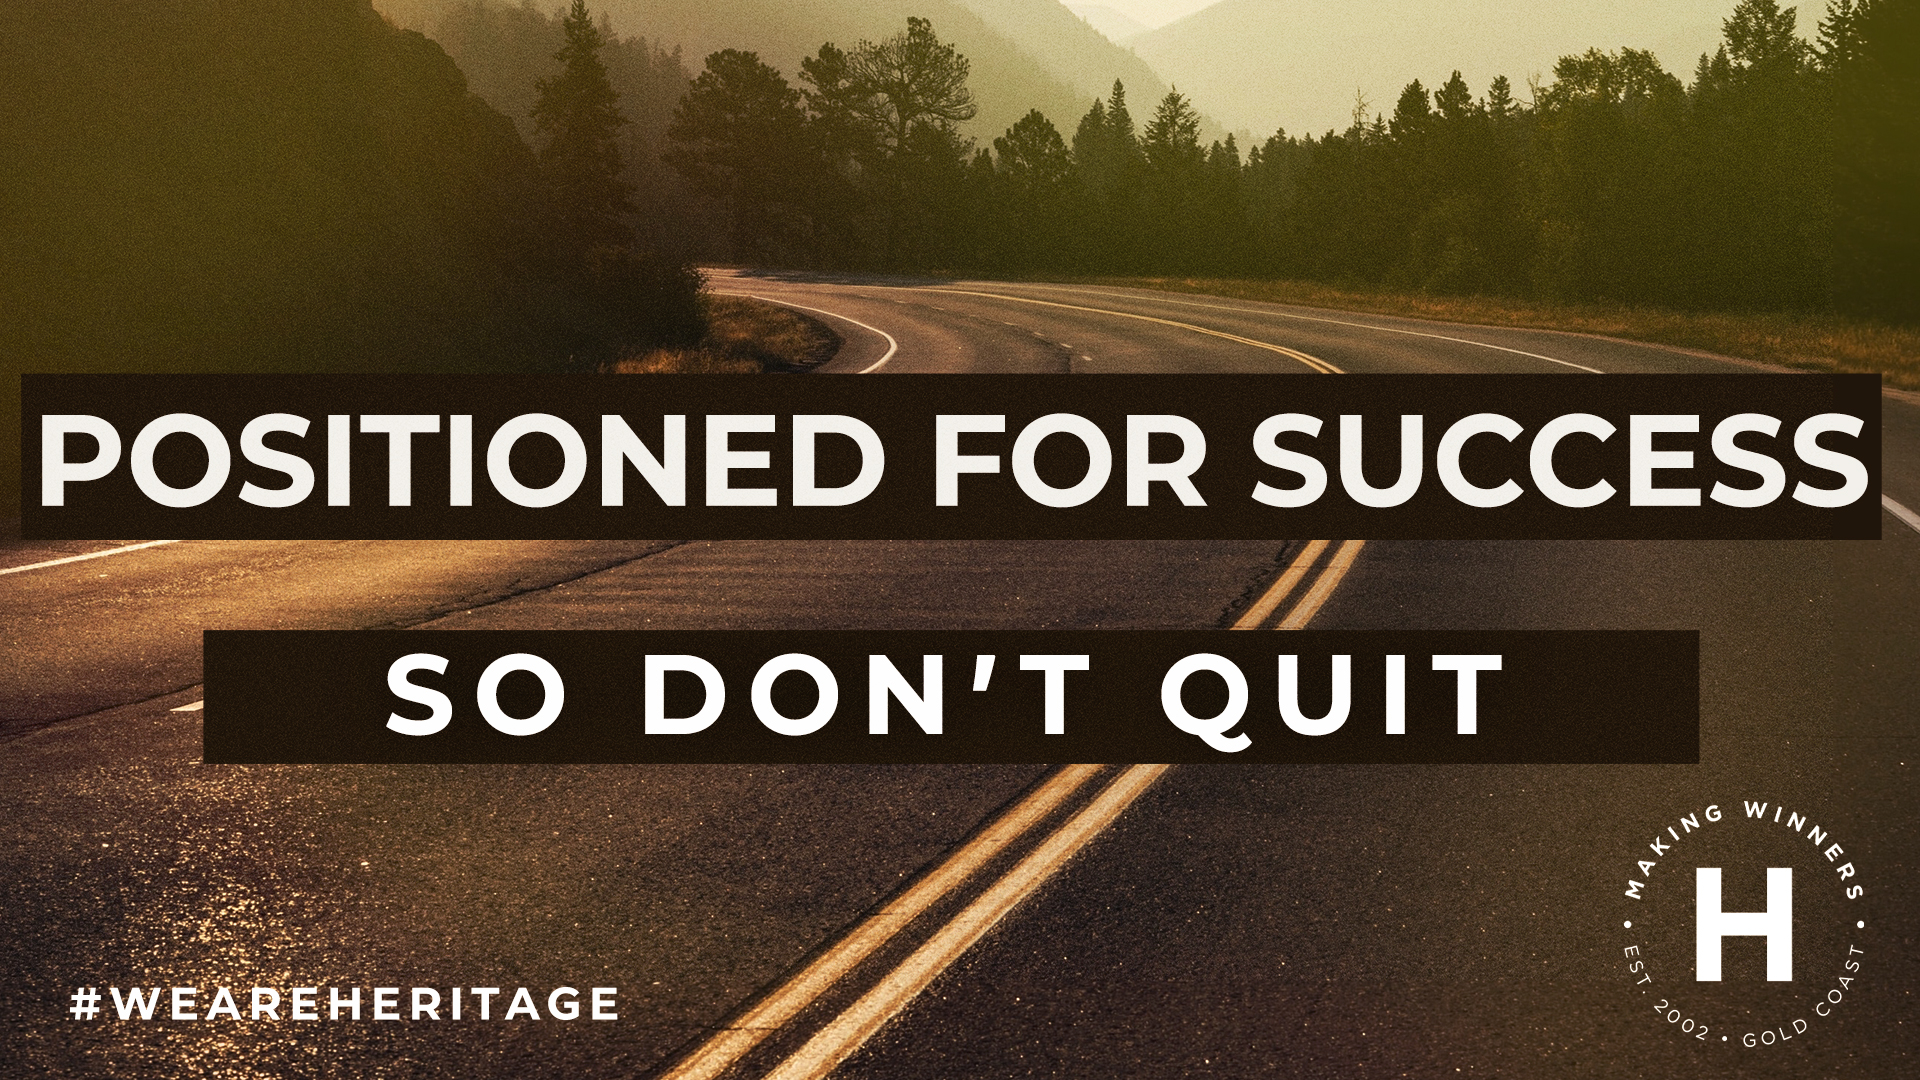 Positioned for Success So Don't Quit